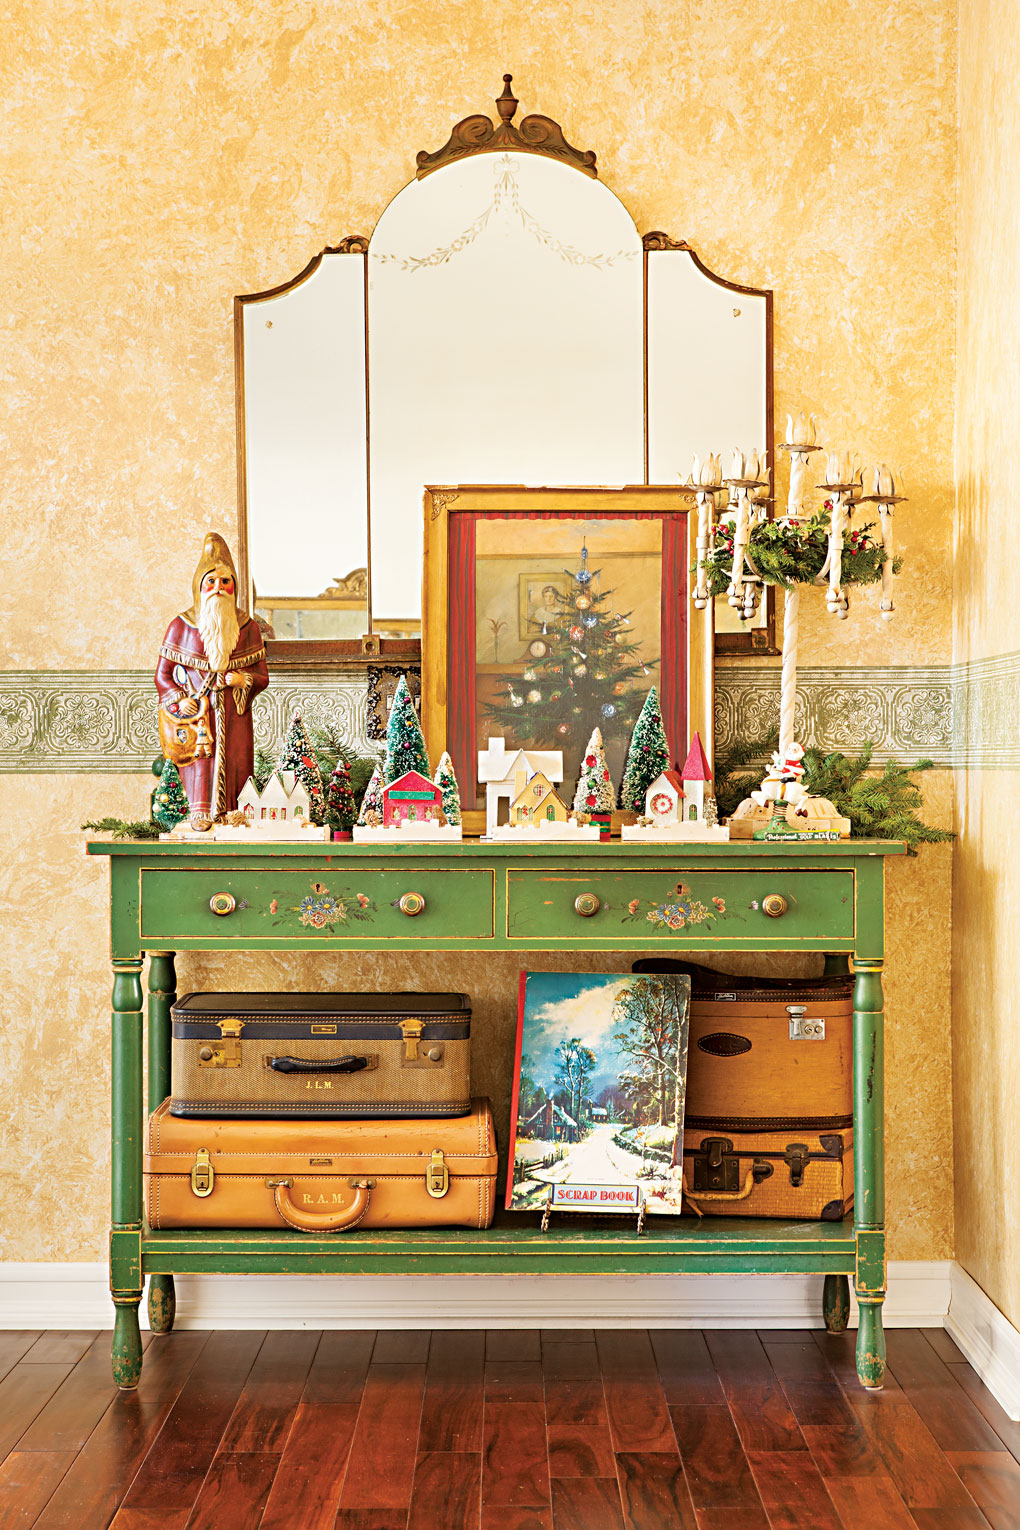 A vintage green entryway table adorned with a village of bottlebrush trees and putz houses next to an elegant candelabra.